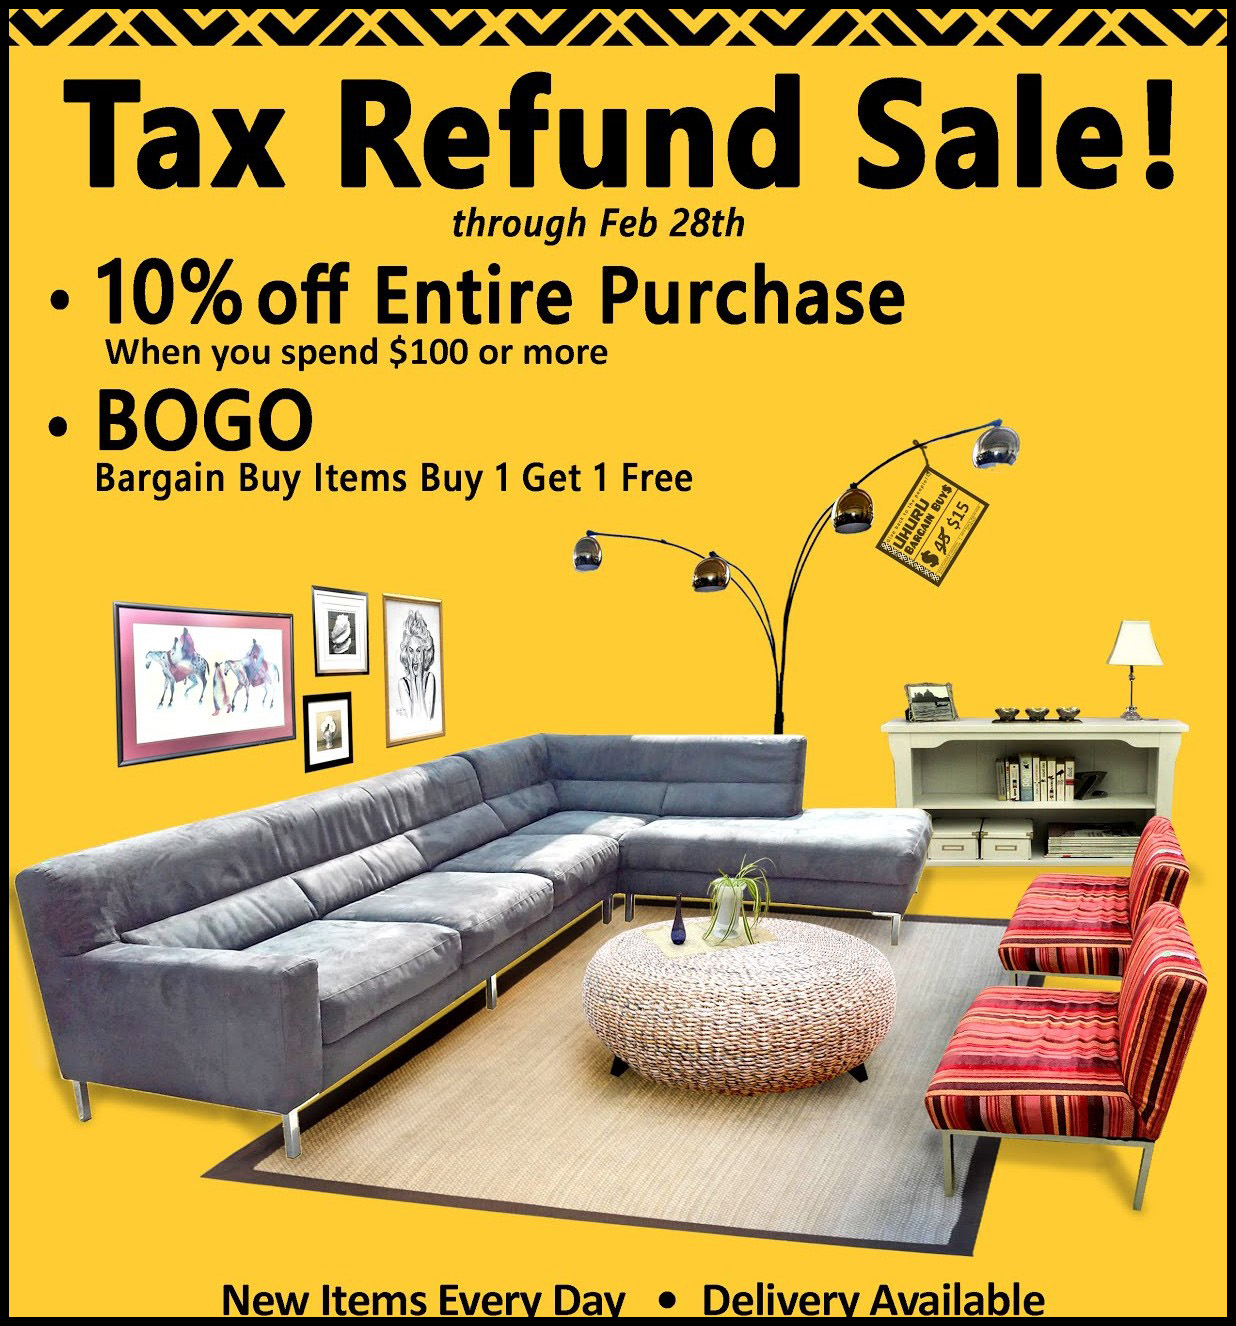 Tax Refund Sale!